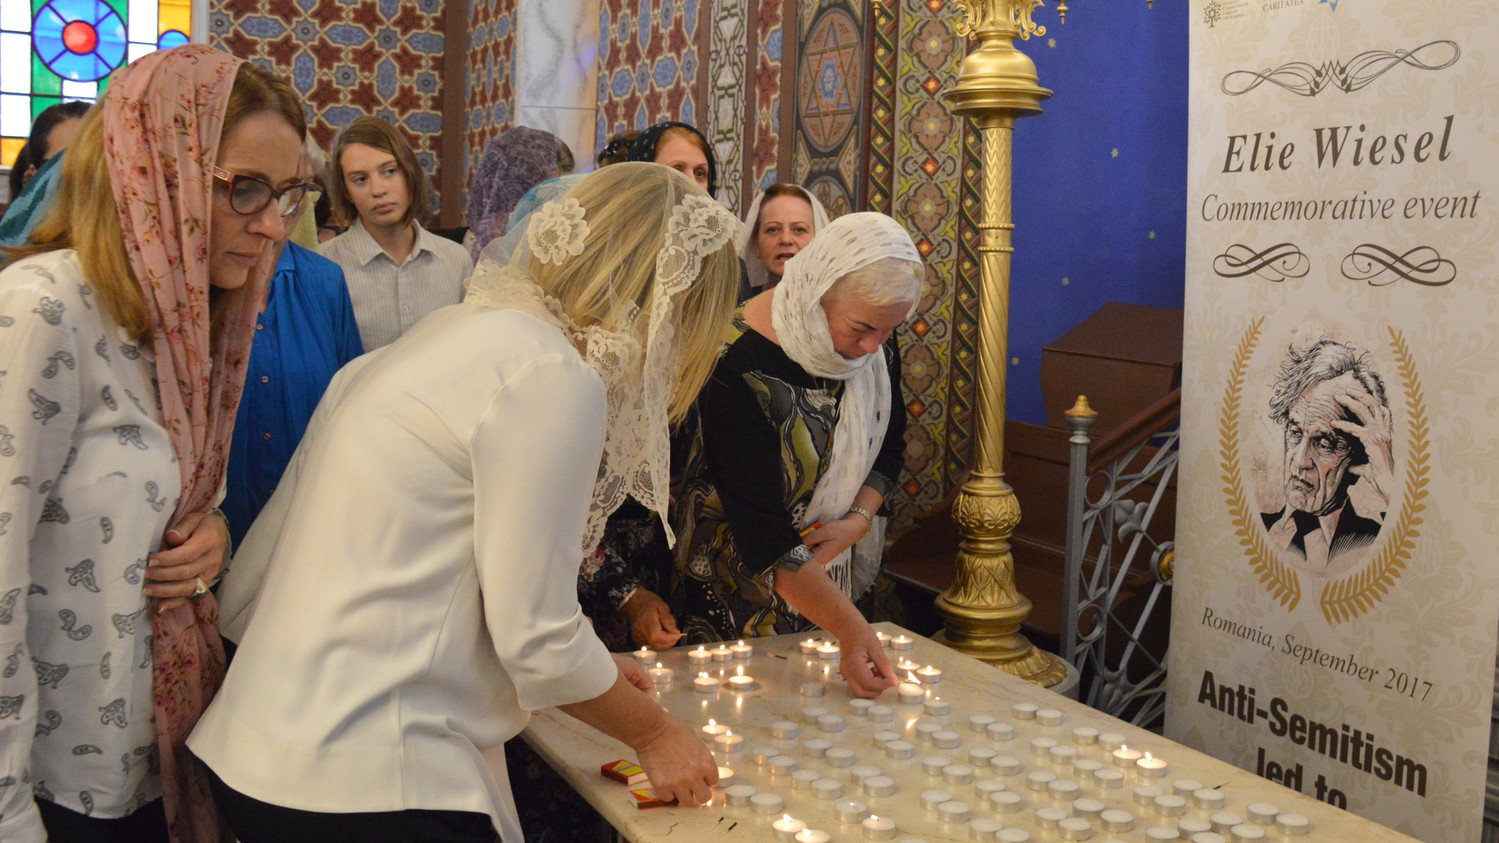 Women lighting candles in memory of Elie Wiesel at the synagogue in Ordea, in northern Romania, on Sept. 8.